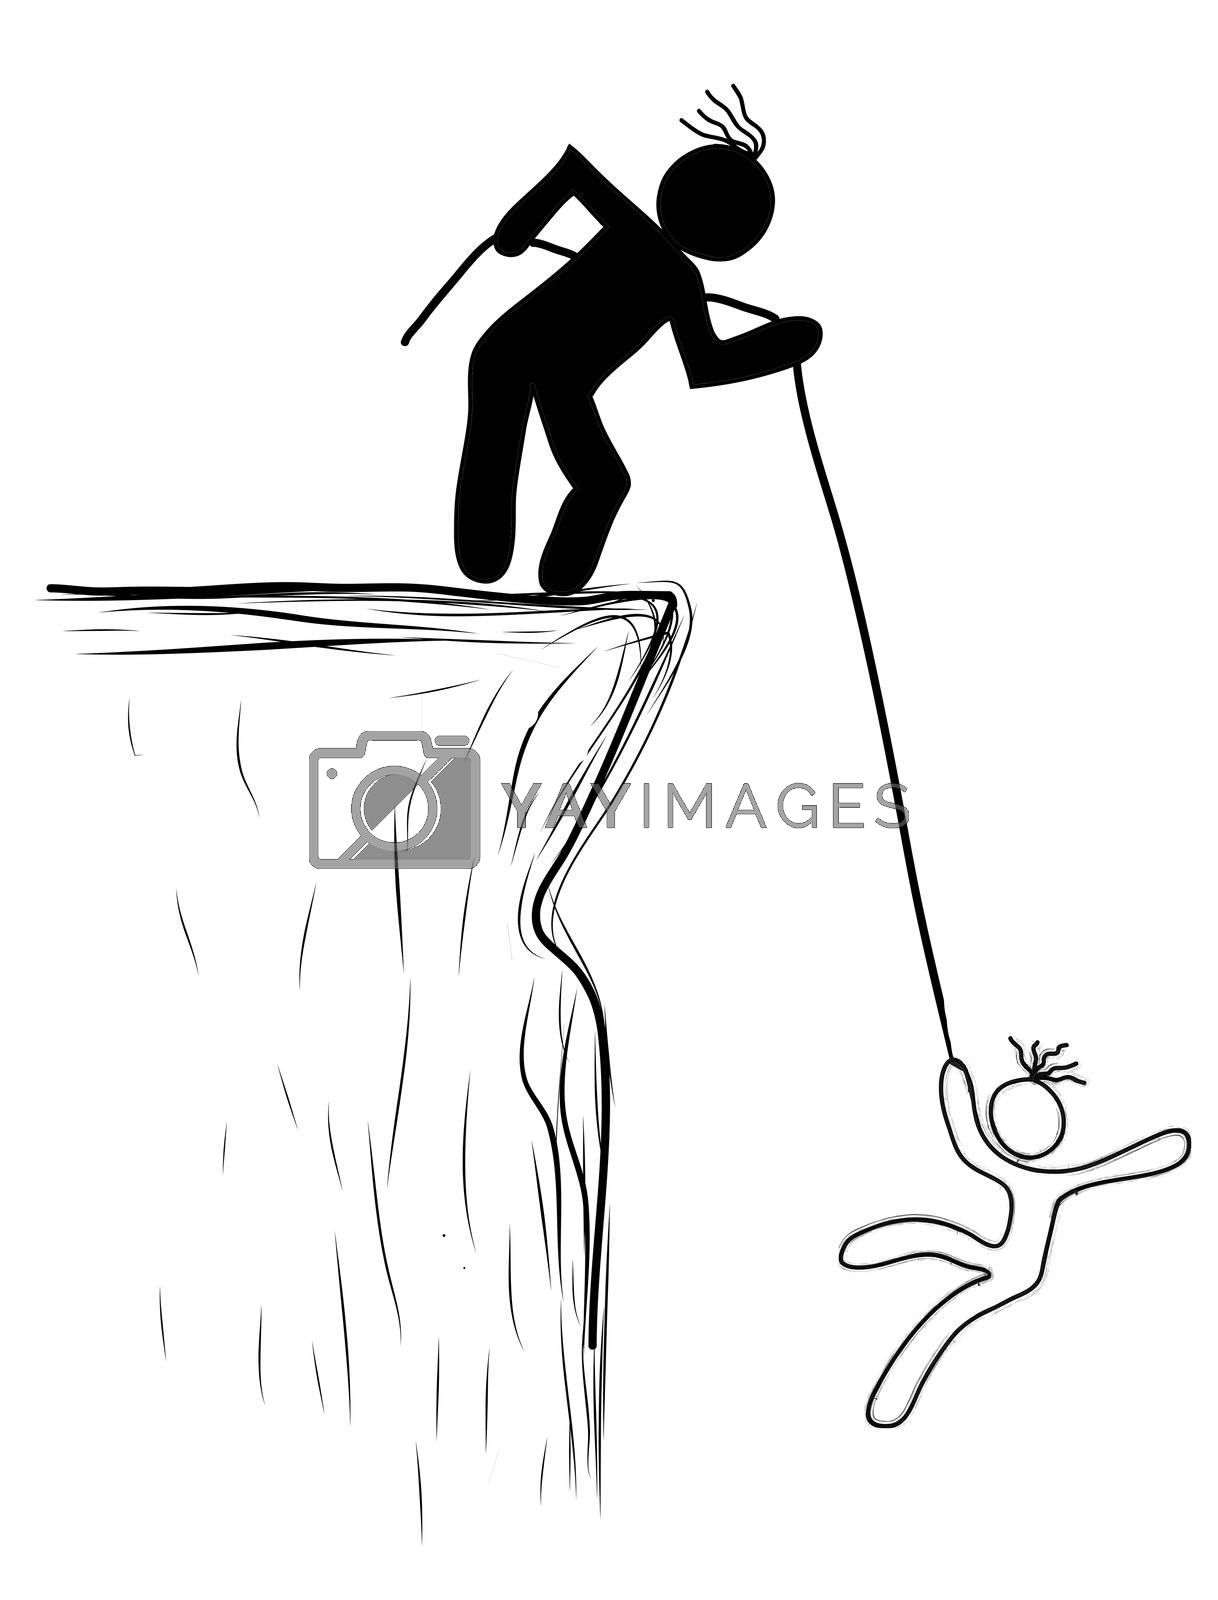 drawing person pulled the rope from the cliff. Helping, saved